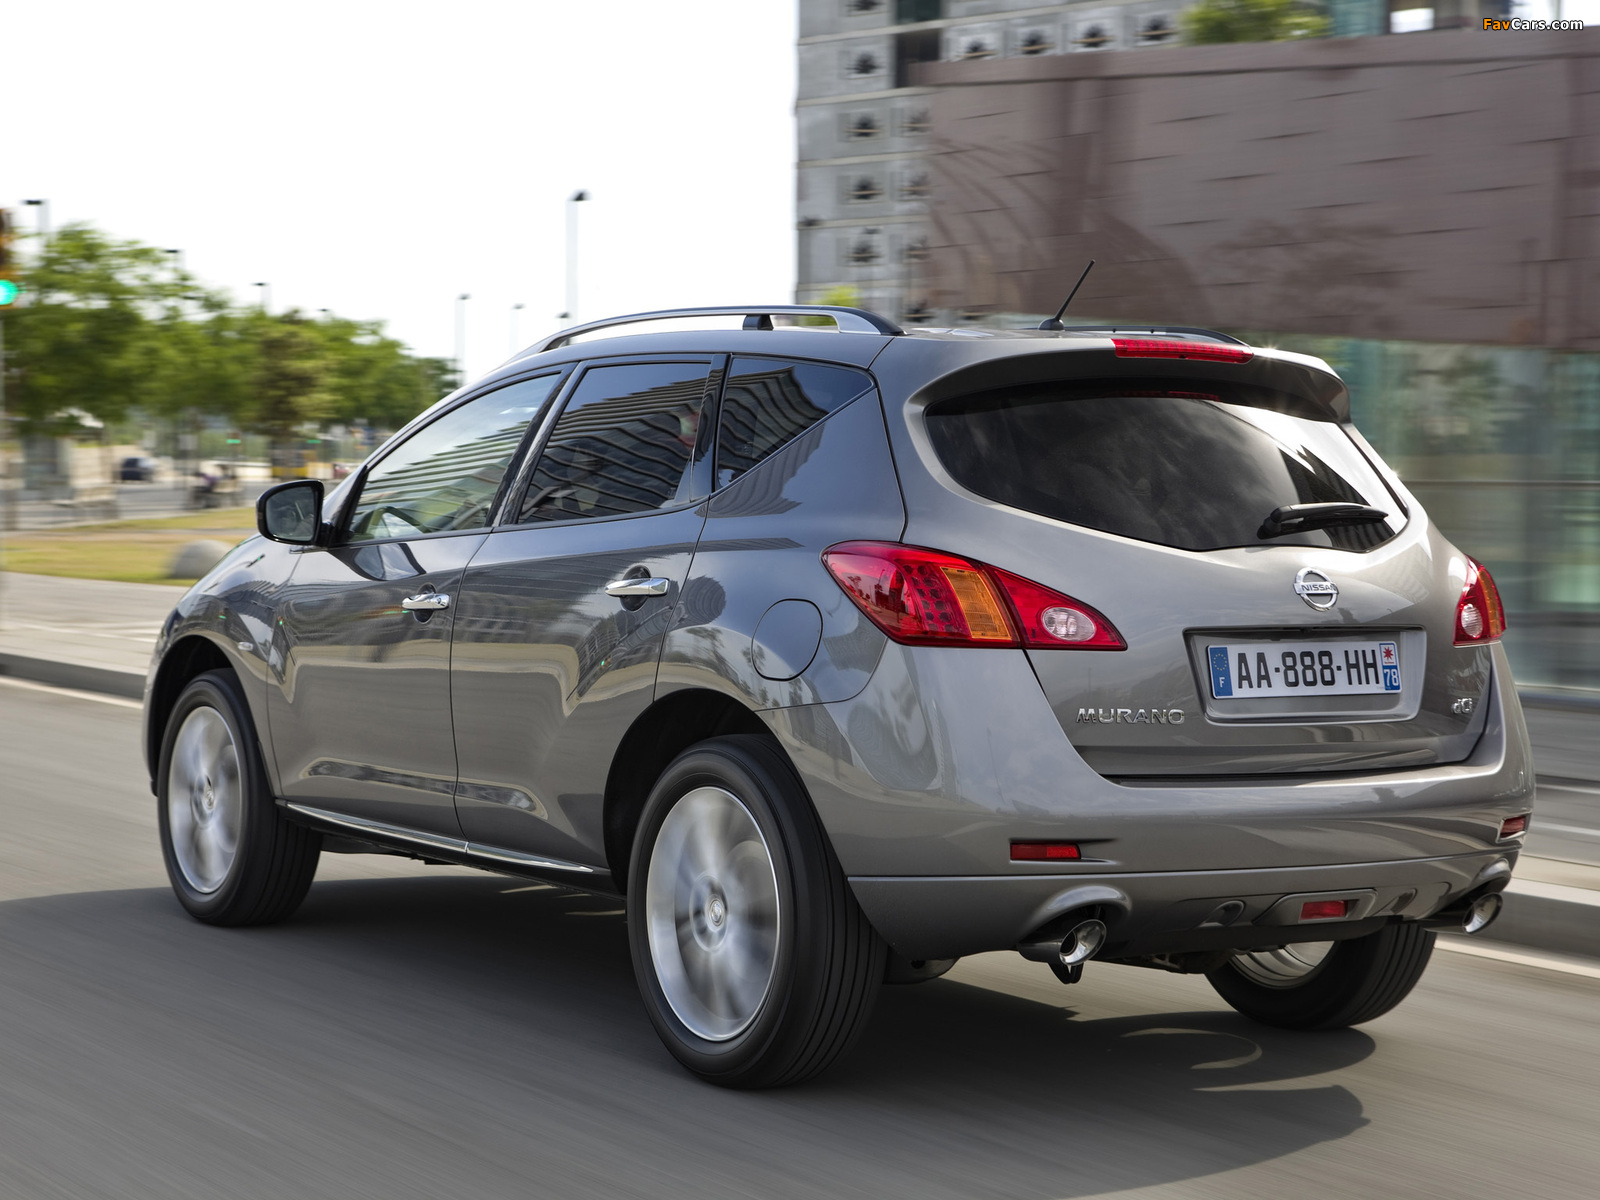 Nissan Murano (Z51) 2010 pictures (1600 x 1200)